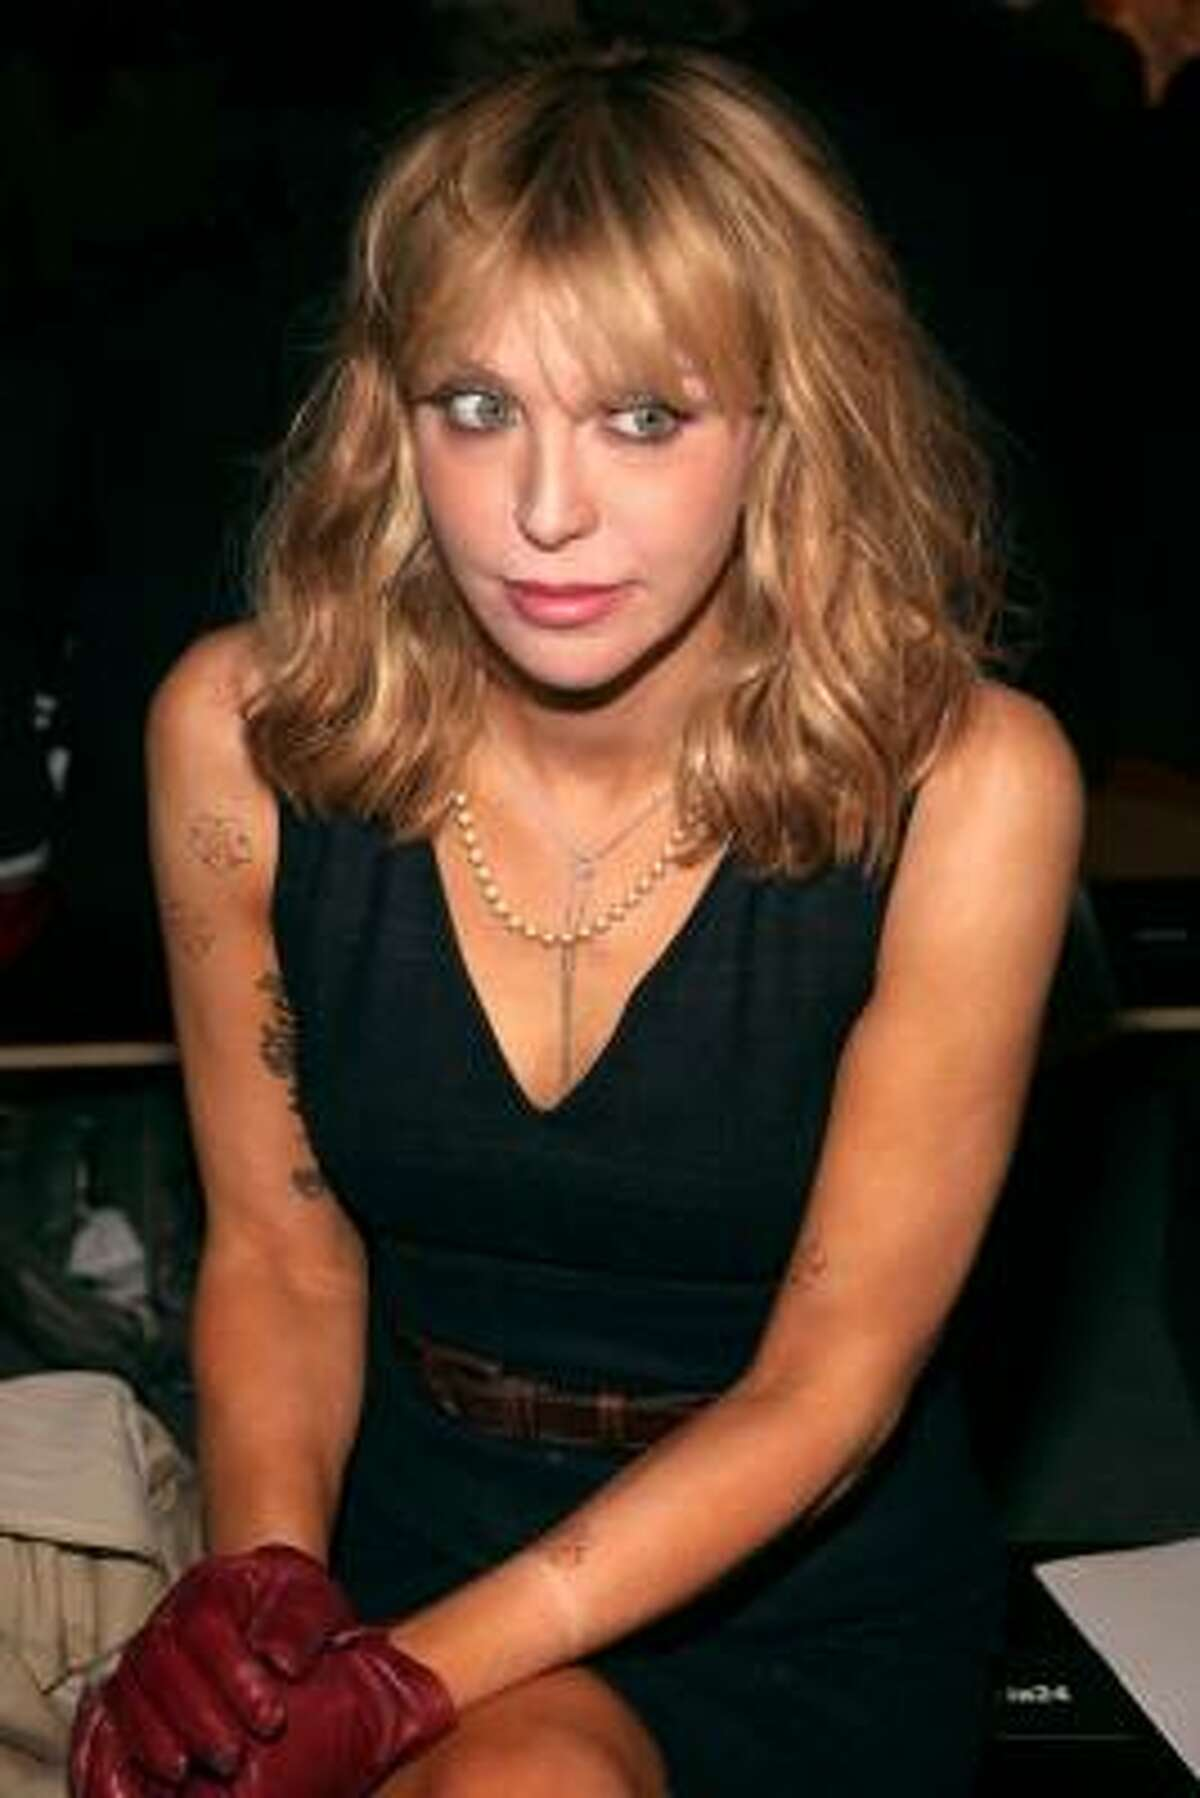 Courtney Love wished her daughter Frances Bean a happy 18th birthday this year from Twitter since the girl has a restraining order out on her. The day after Frances Bean's birthday she took to Twitter in a crazy rant. Free Frances Bean?